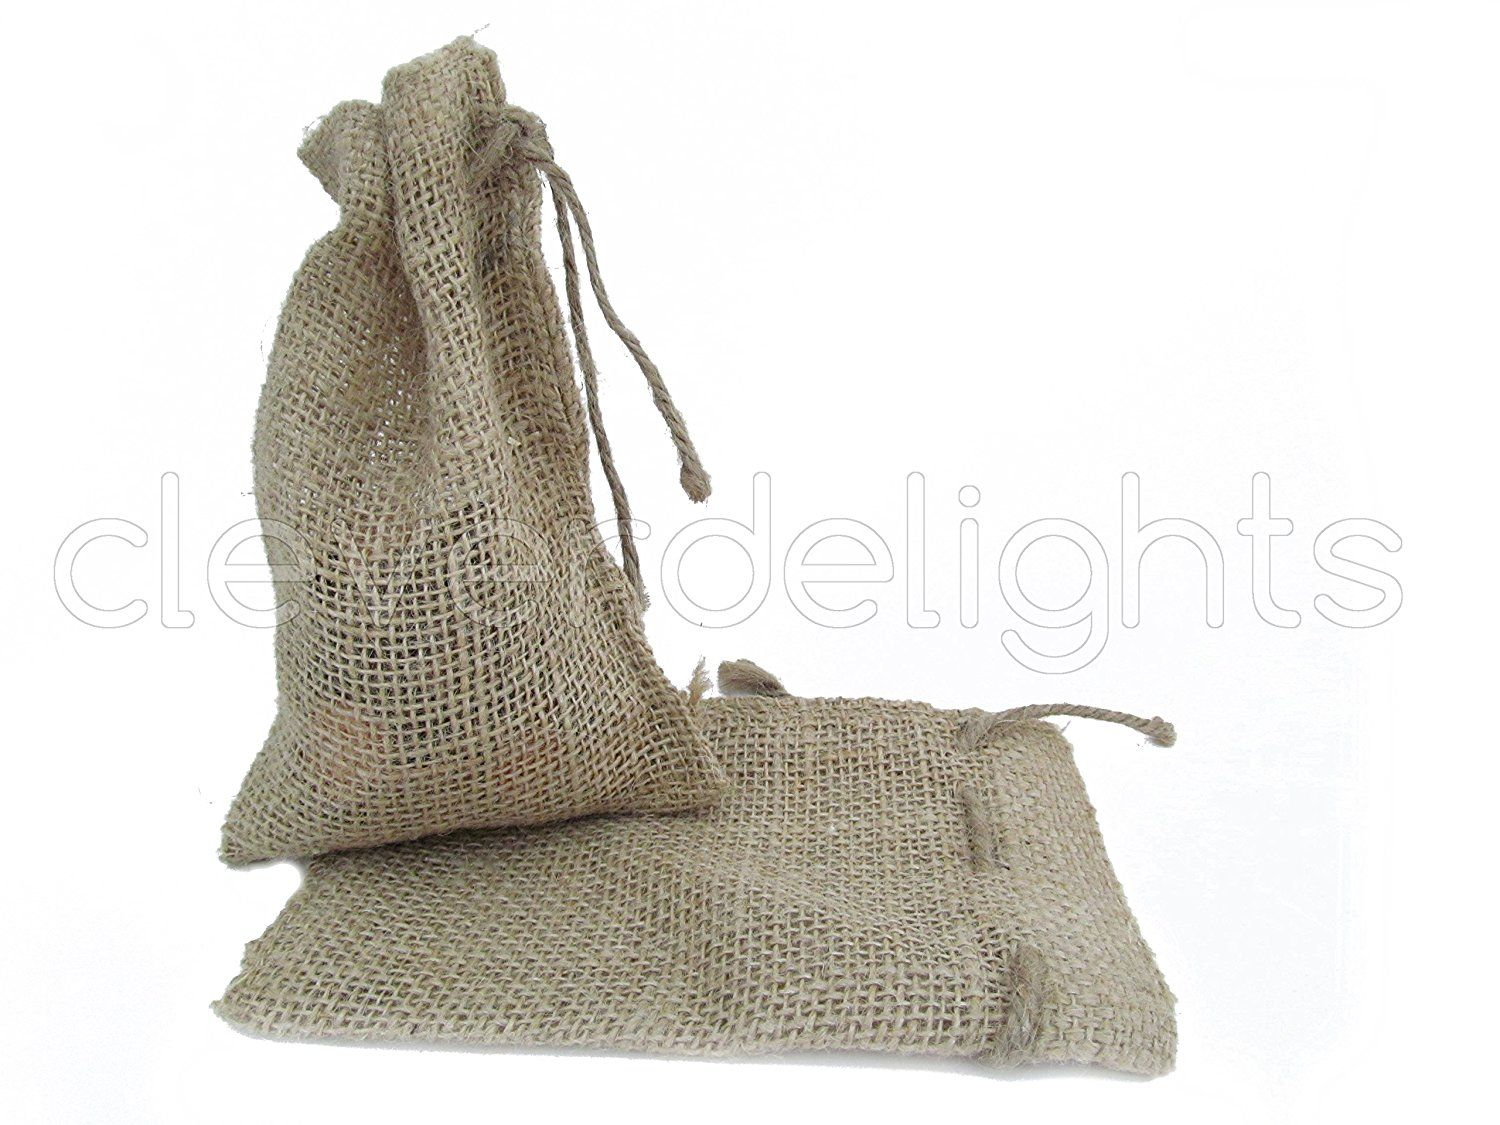 CleverDelights 4\' x 6\' Burlap Bags with Natural Jute Drawstring - 25 ...